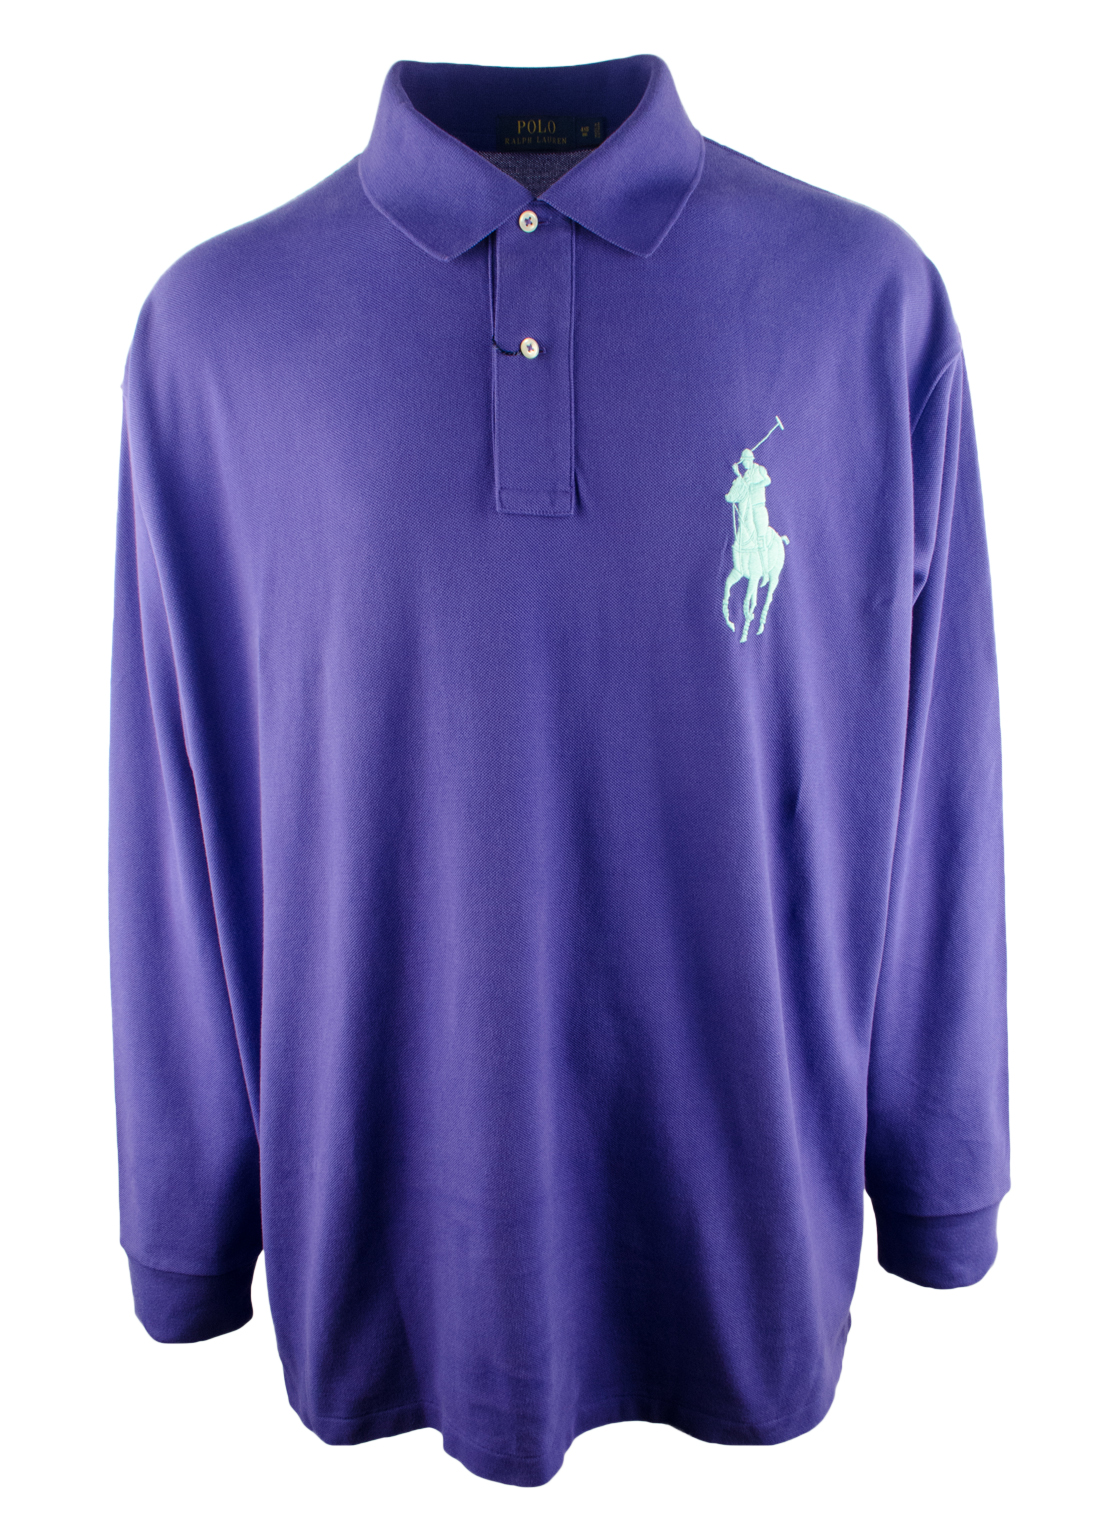 Polo ralph lauren men 39 s big and tall classic fit long for Xlt long sleeve polo shirts